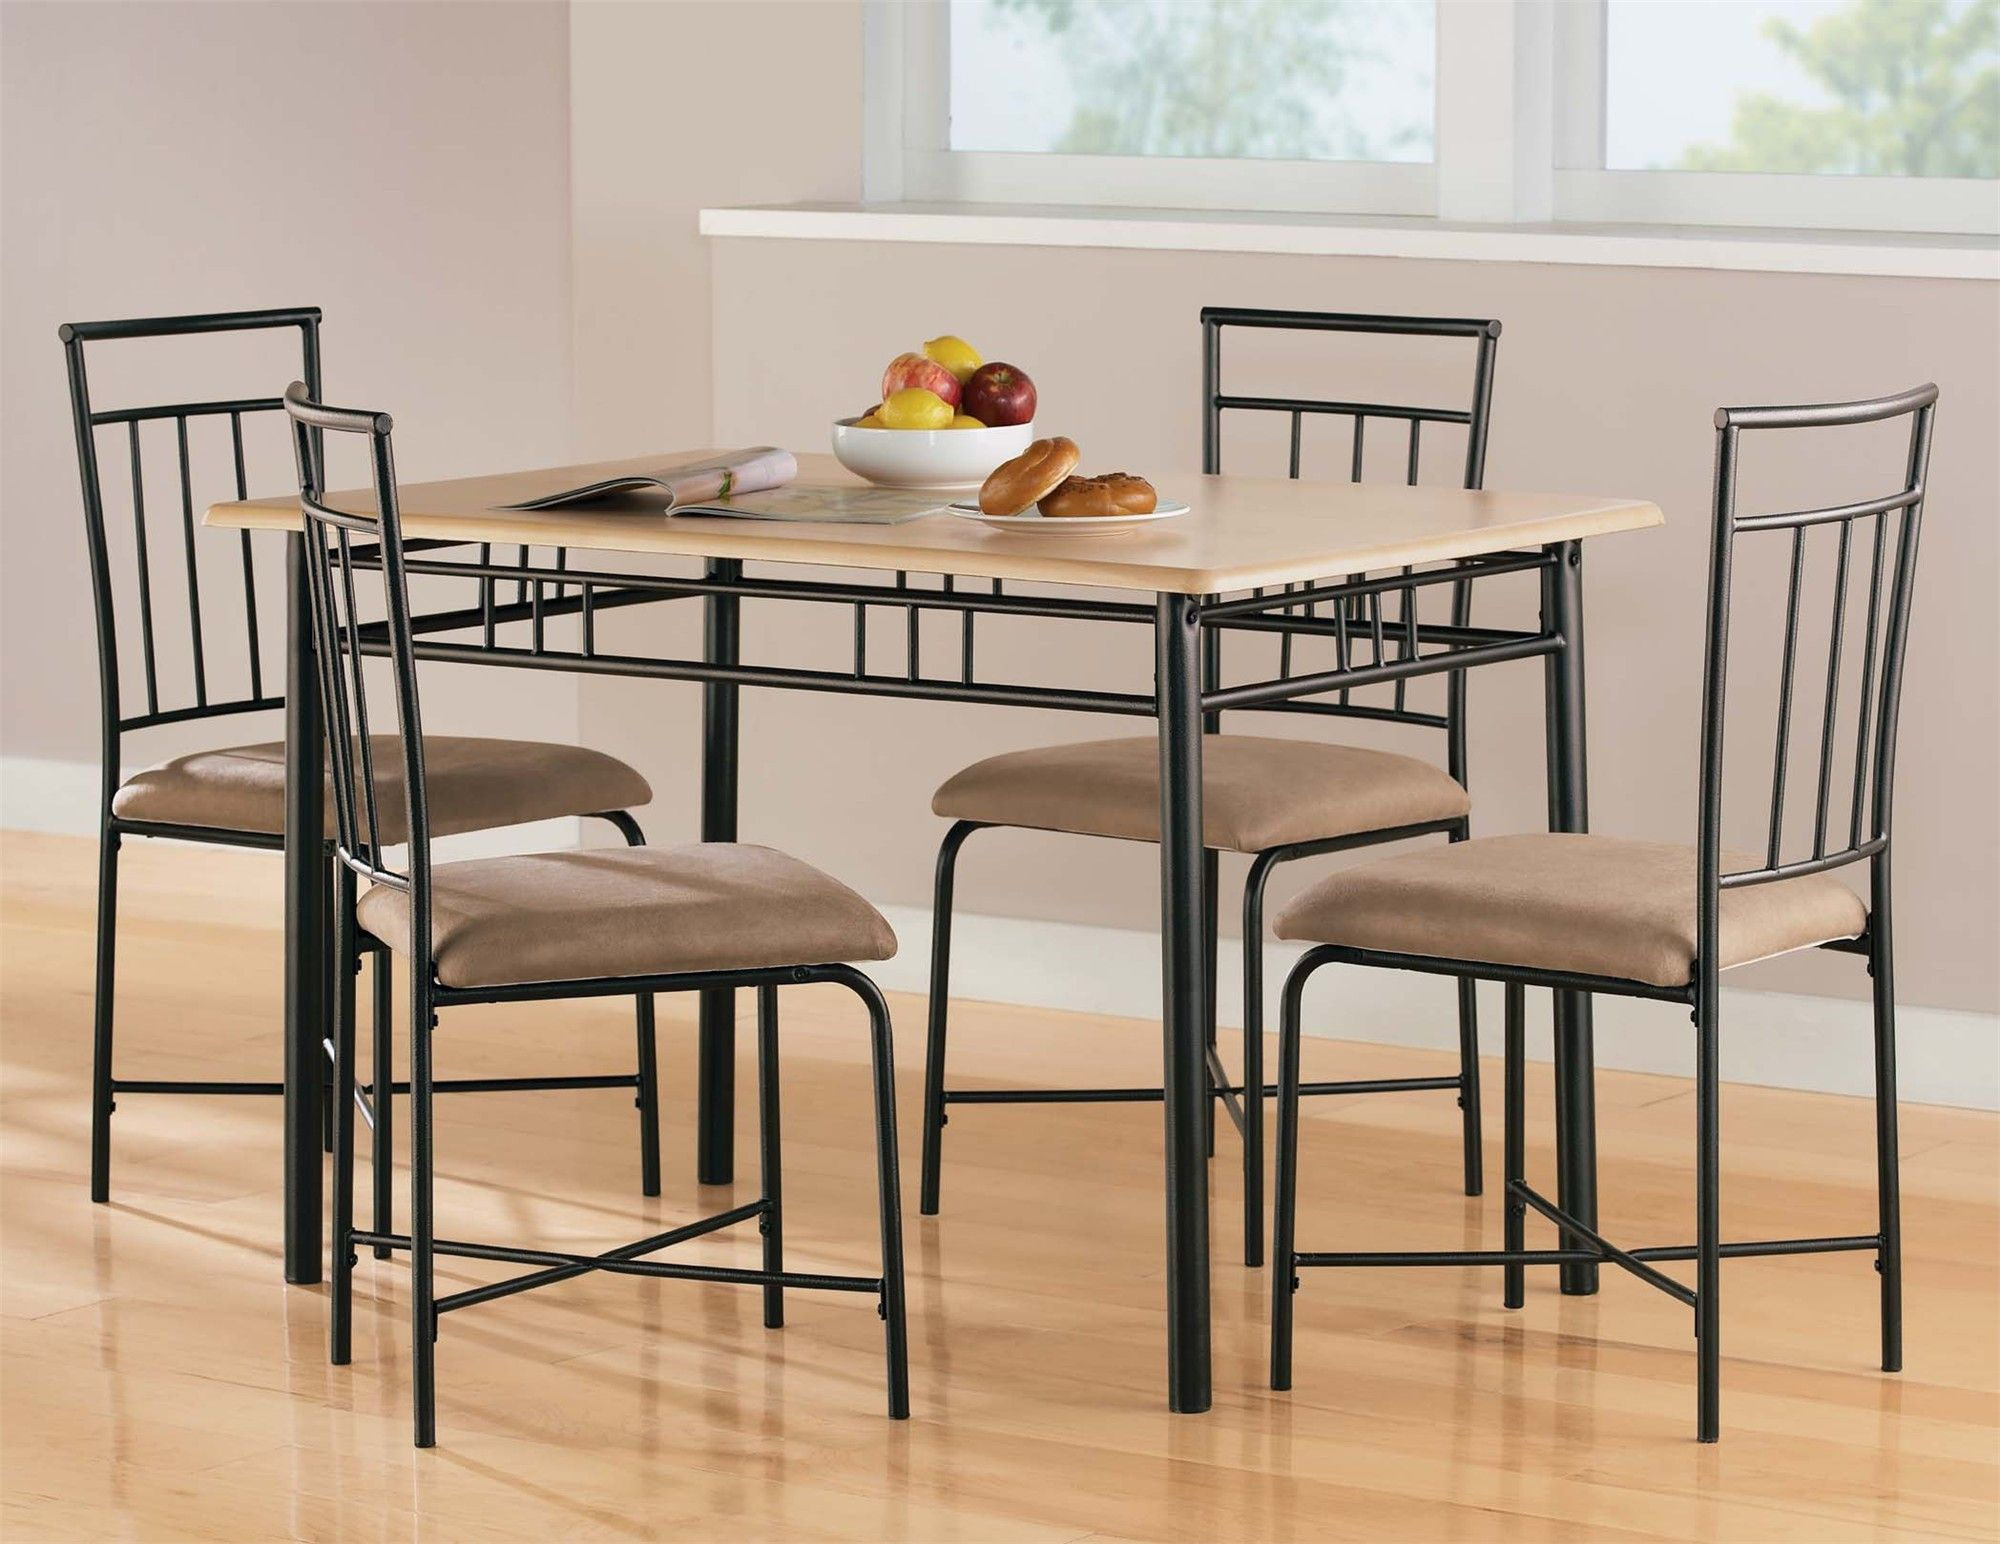 Dining Room Unique Dining Room Furniture Sets With Black Steel